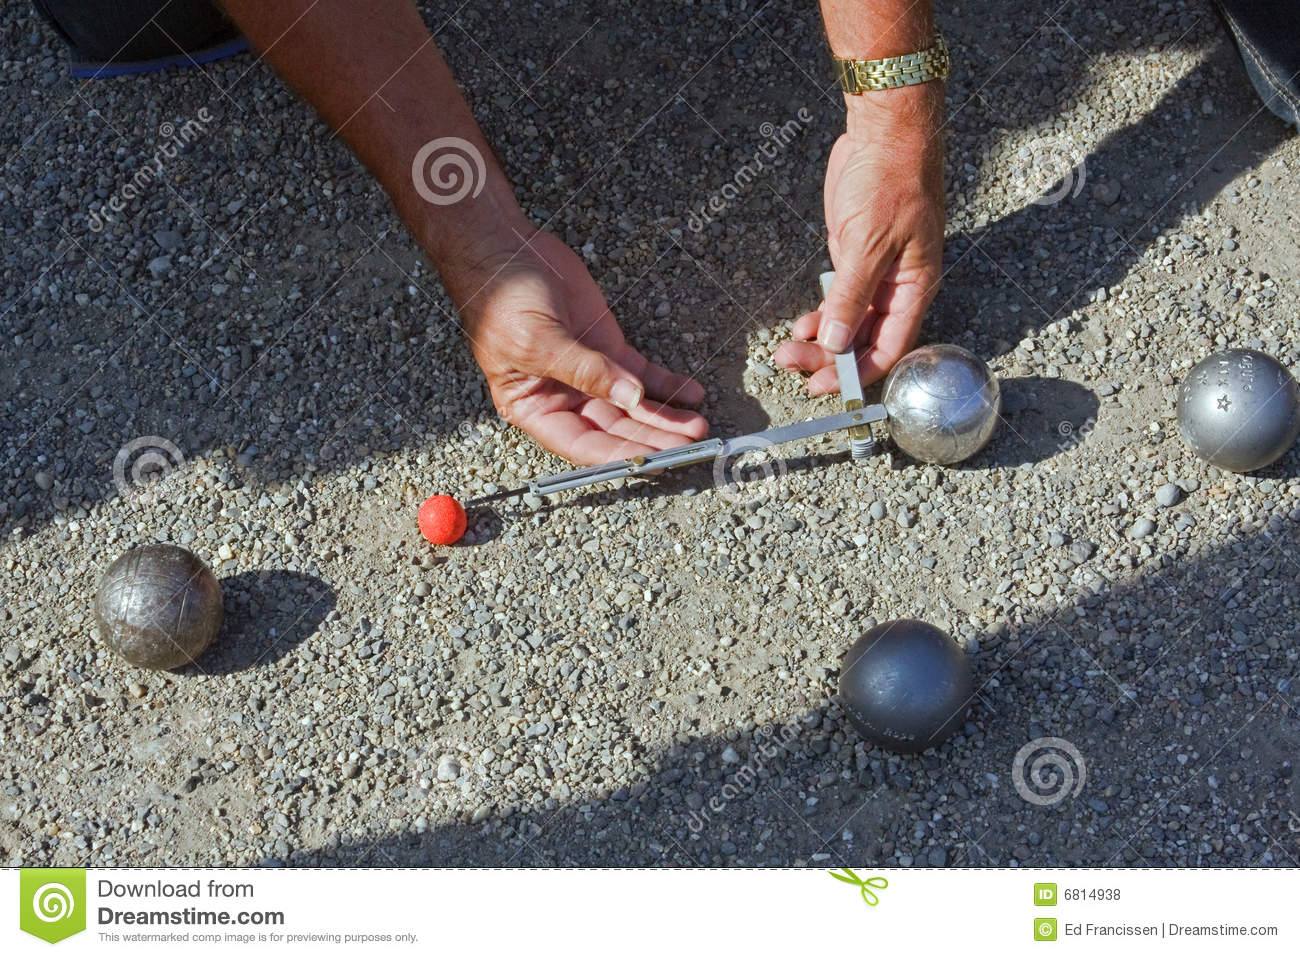 Jeu de boules or petanque royalty free stock photos for Poids boule de petanque